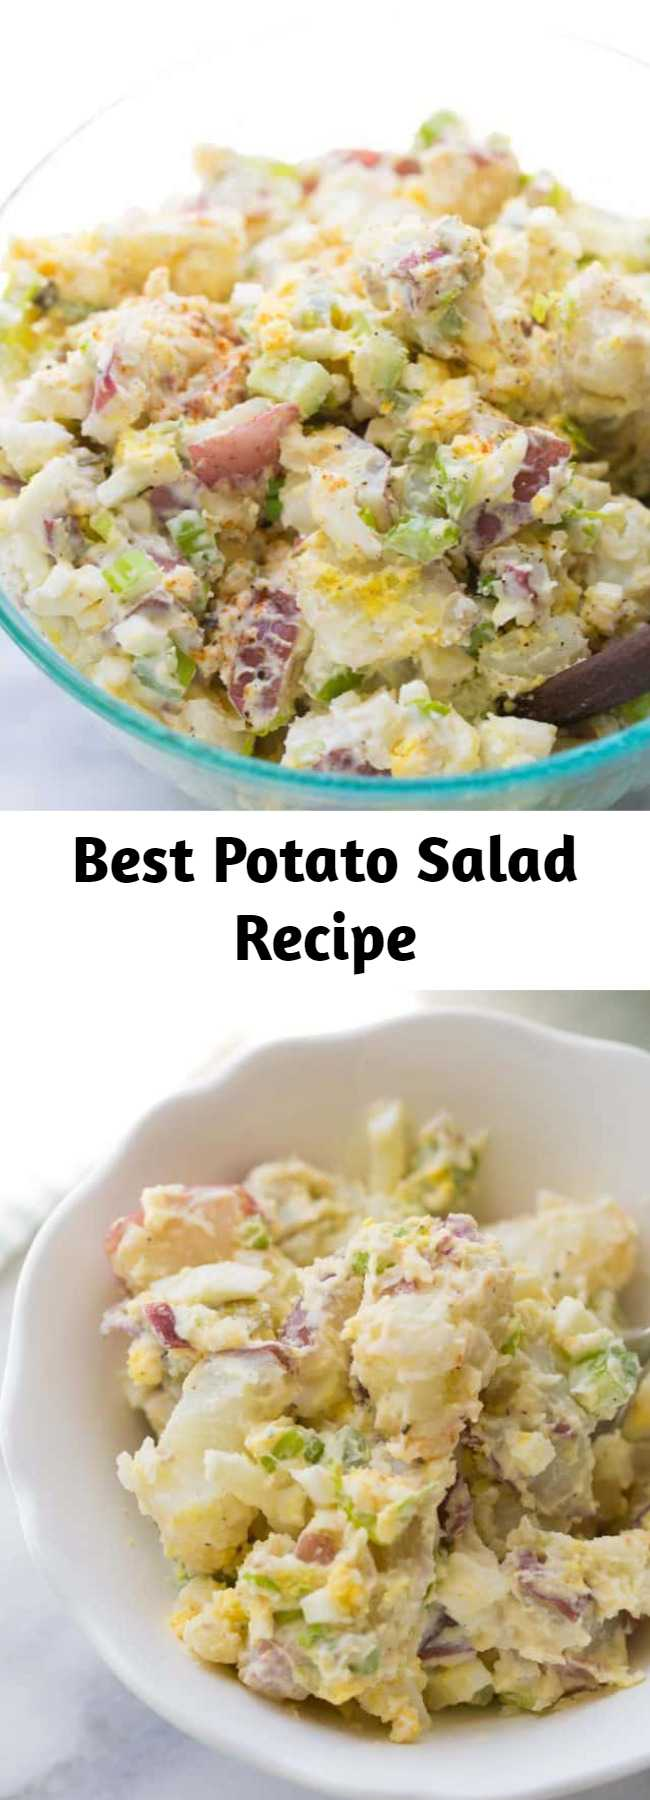 Best Potato Salad Recipe - The BEST ever potato salad! Everyone always asks for this recipe. Such a crowd-pleaser! The trick that makes this potato salad extra delicious is mixing the warm potatoes with a vinegar/salt/sugar mixture. This helps the flavor to go inside the potatoes, making this potato salad extra flavorful! #potatosalad #bbqsides #glutenfree #potatosaladrecipe #bestpotatosalad